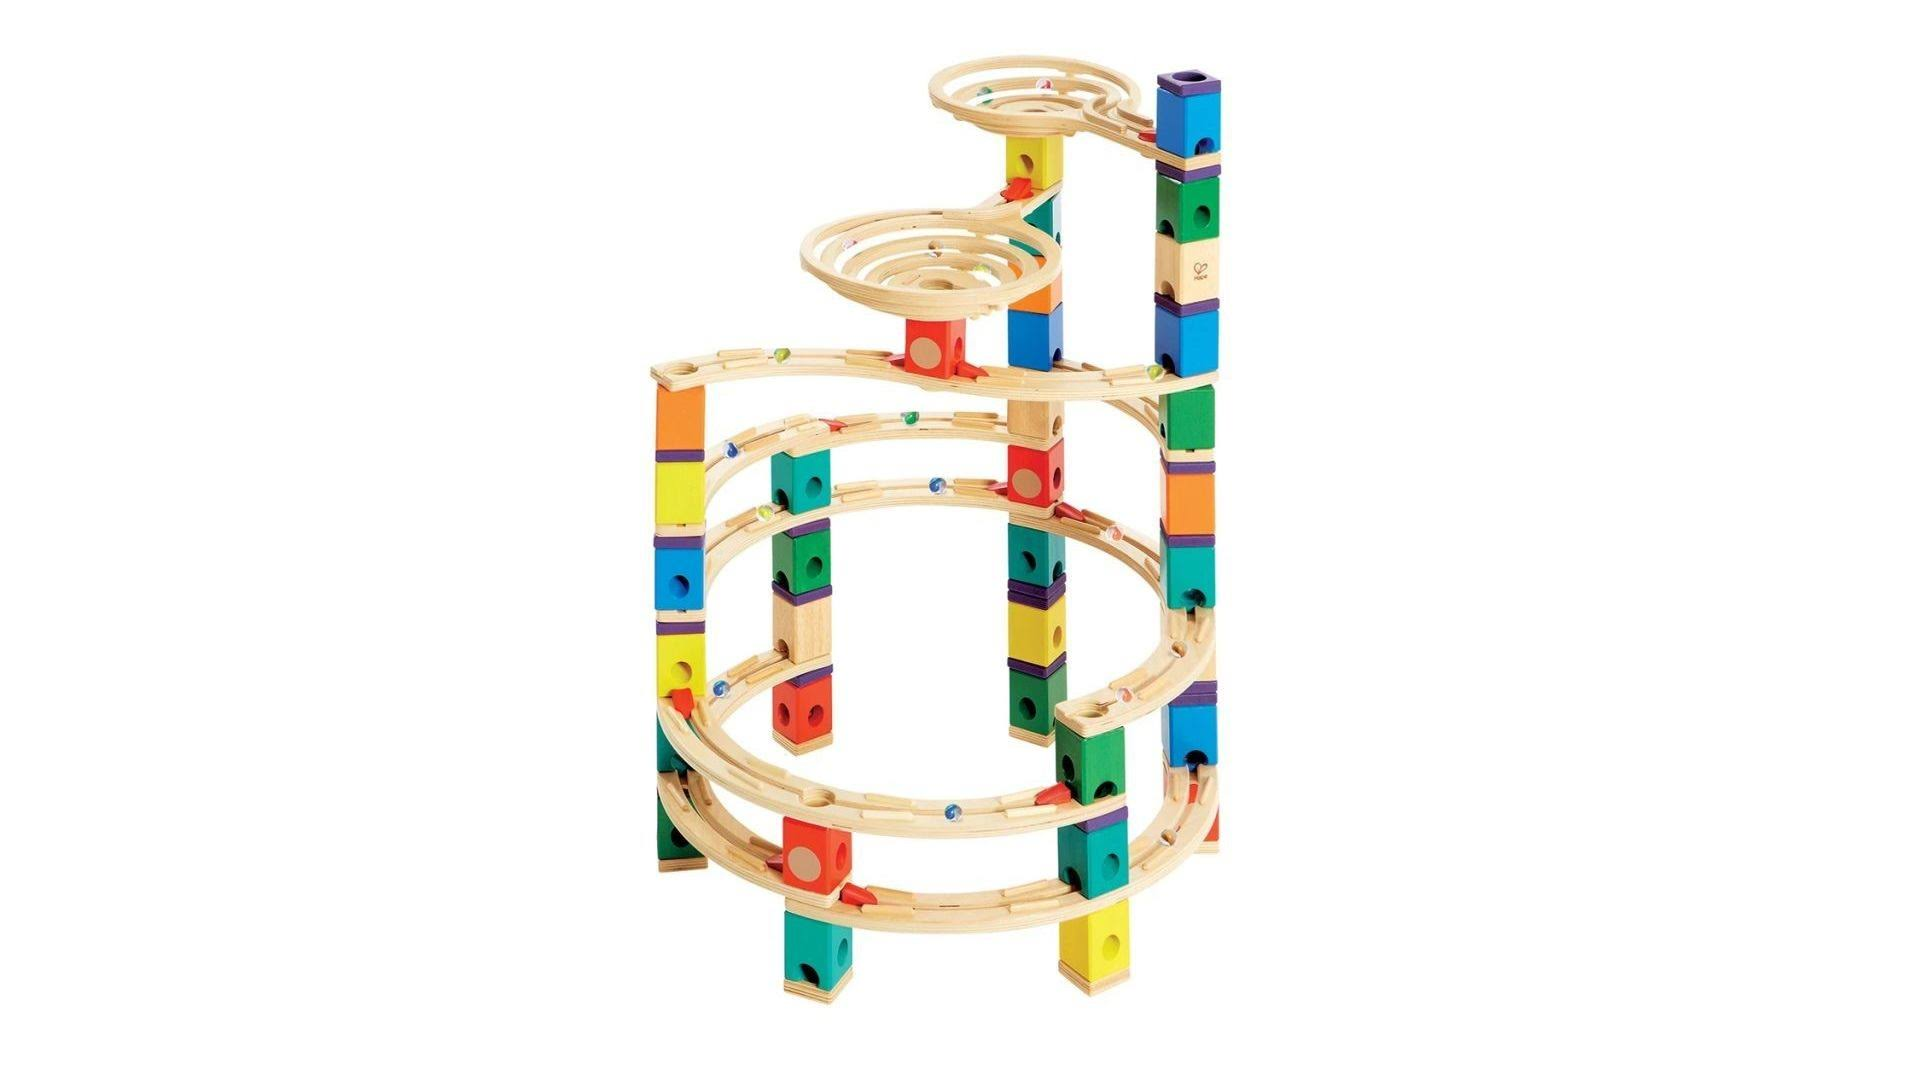 Hape Toys The Cyclone Quadrilla Marble Run